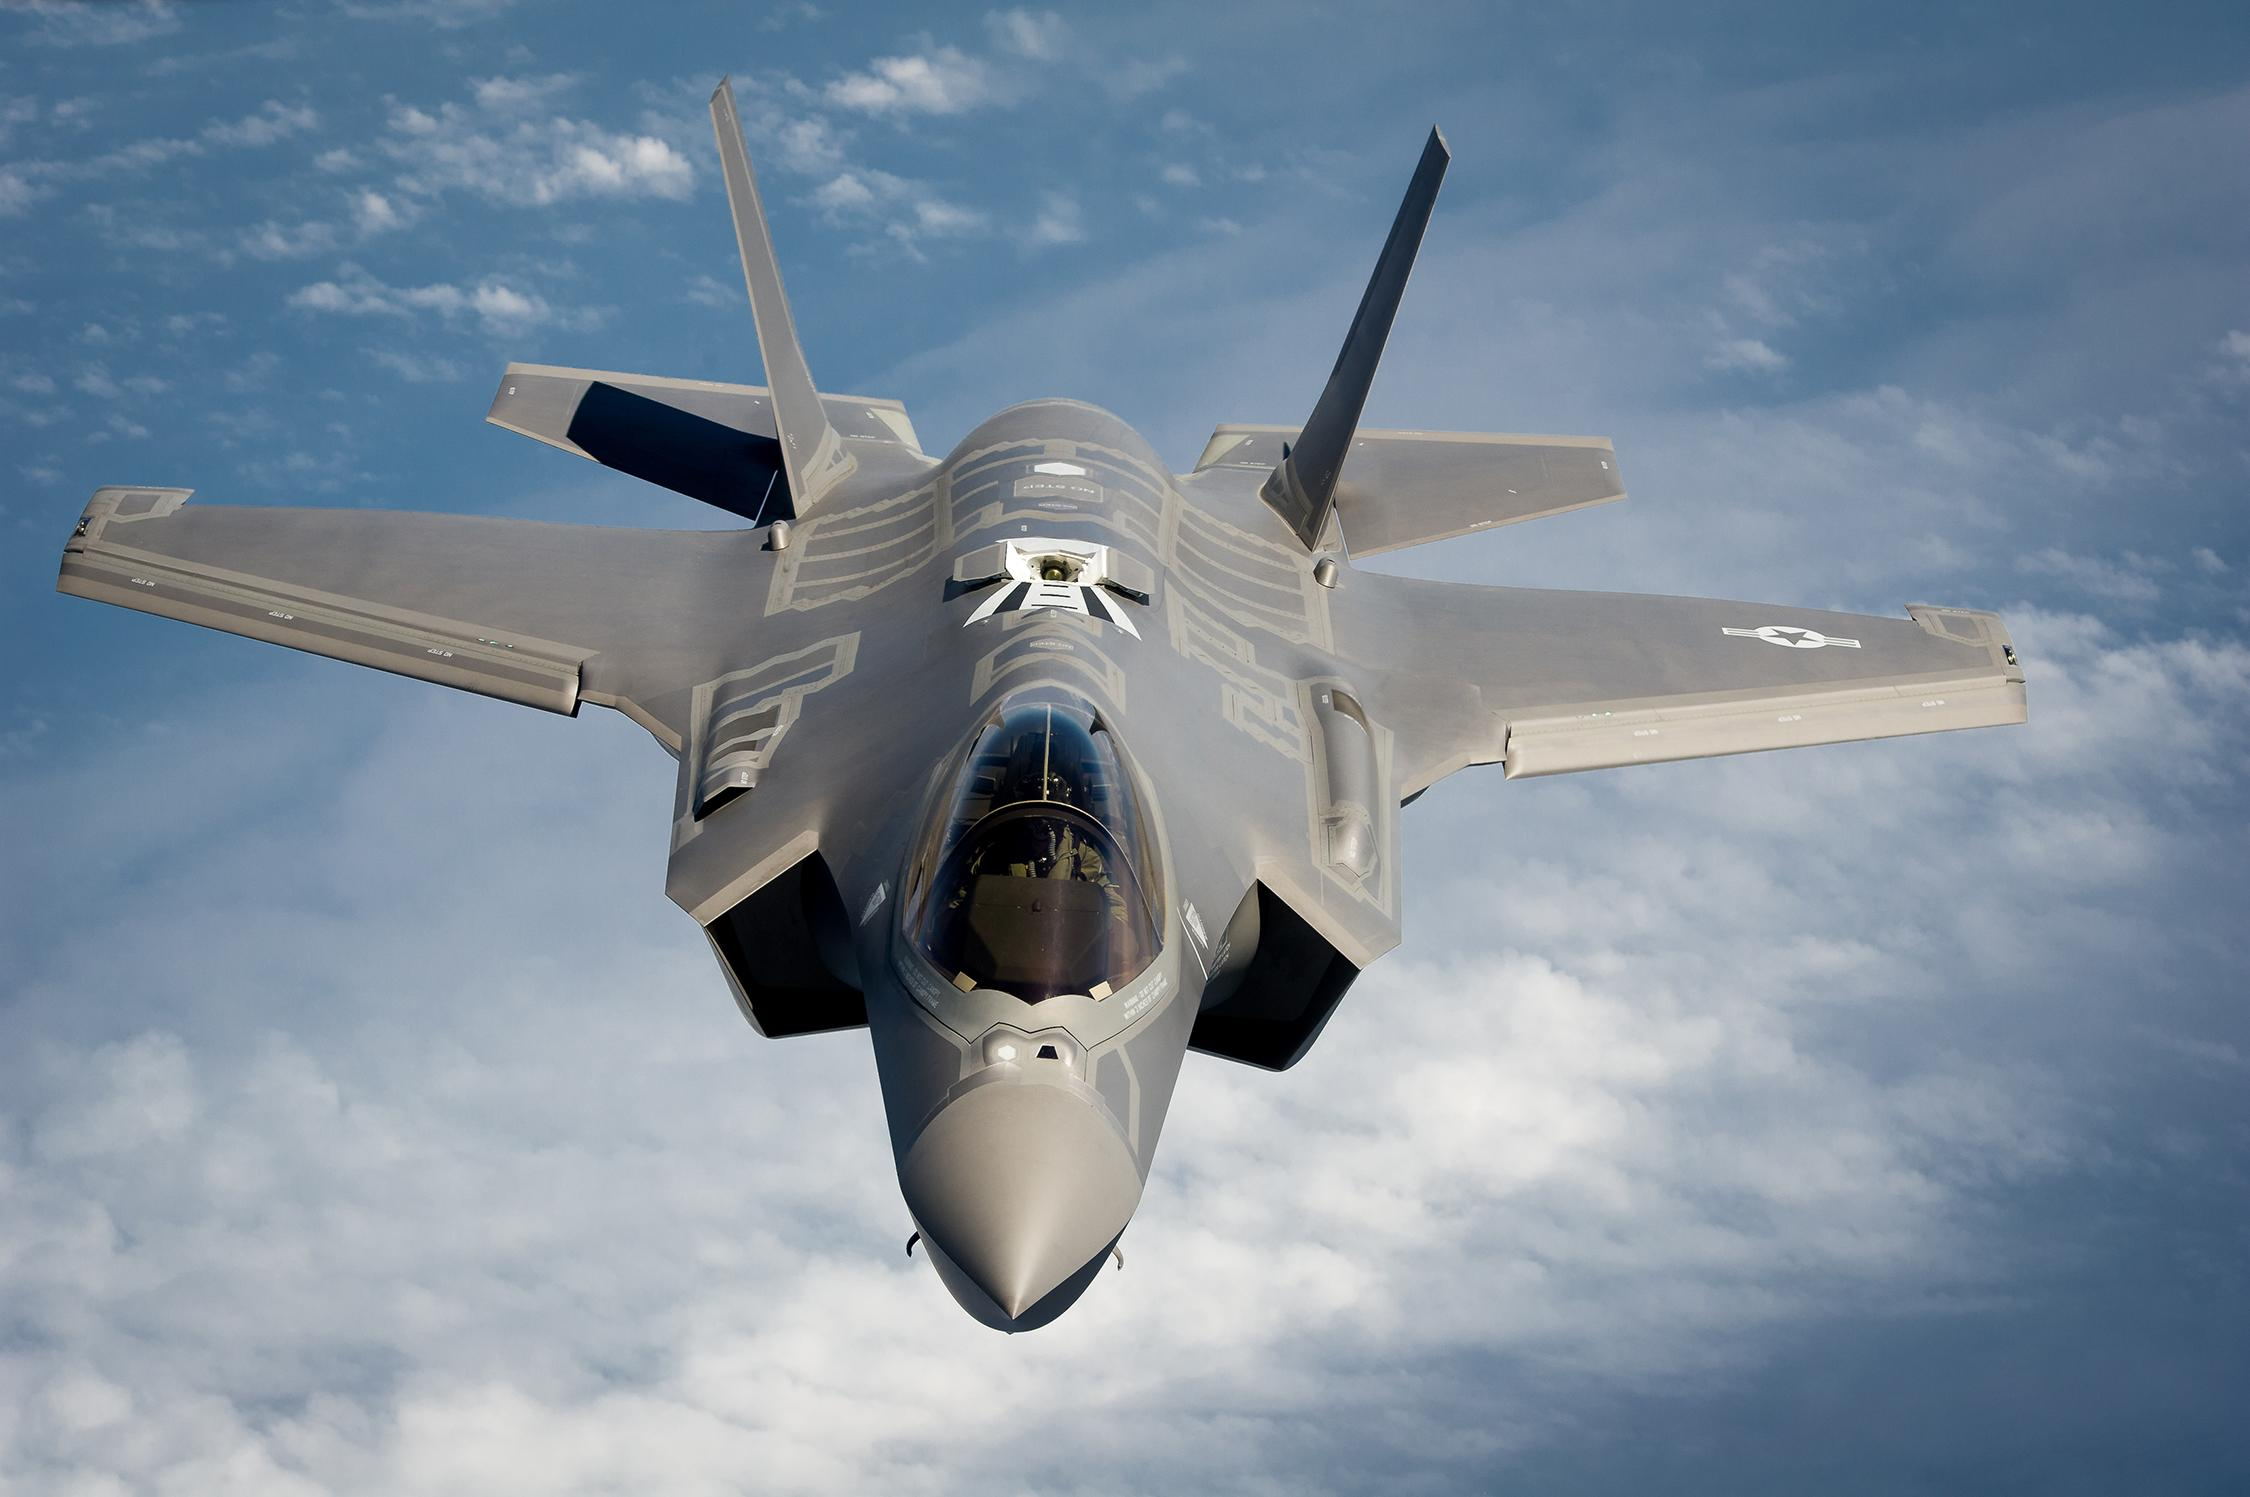 MPC Presents: A Poster Documentary of the Lockheed Martin F-35 ...